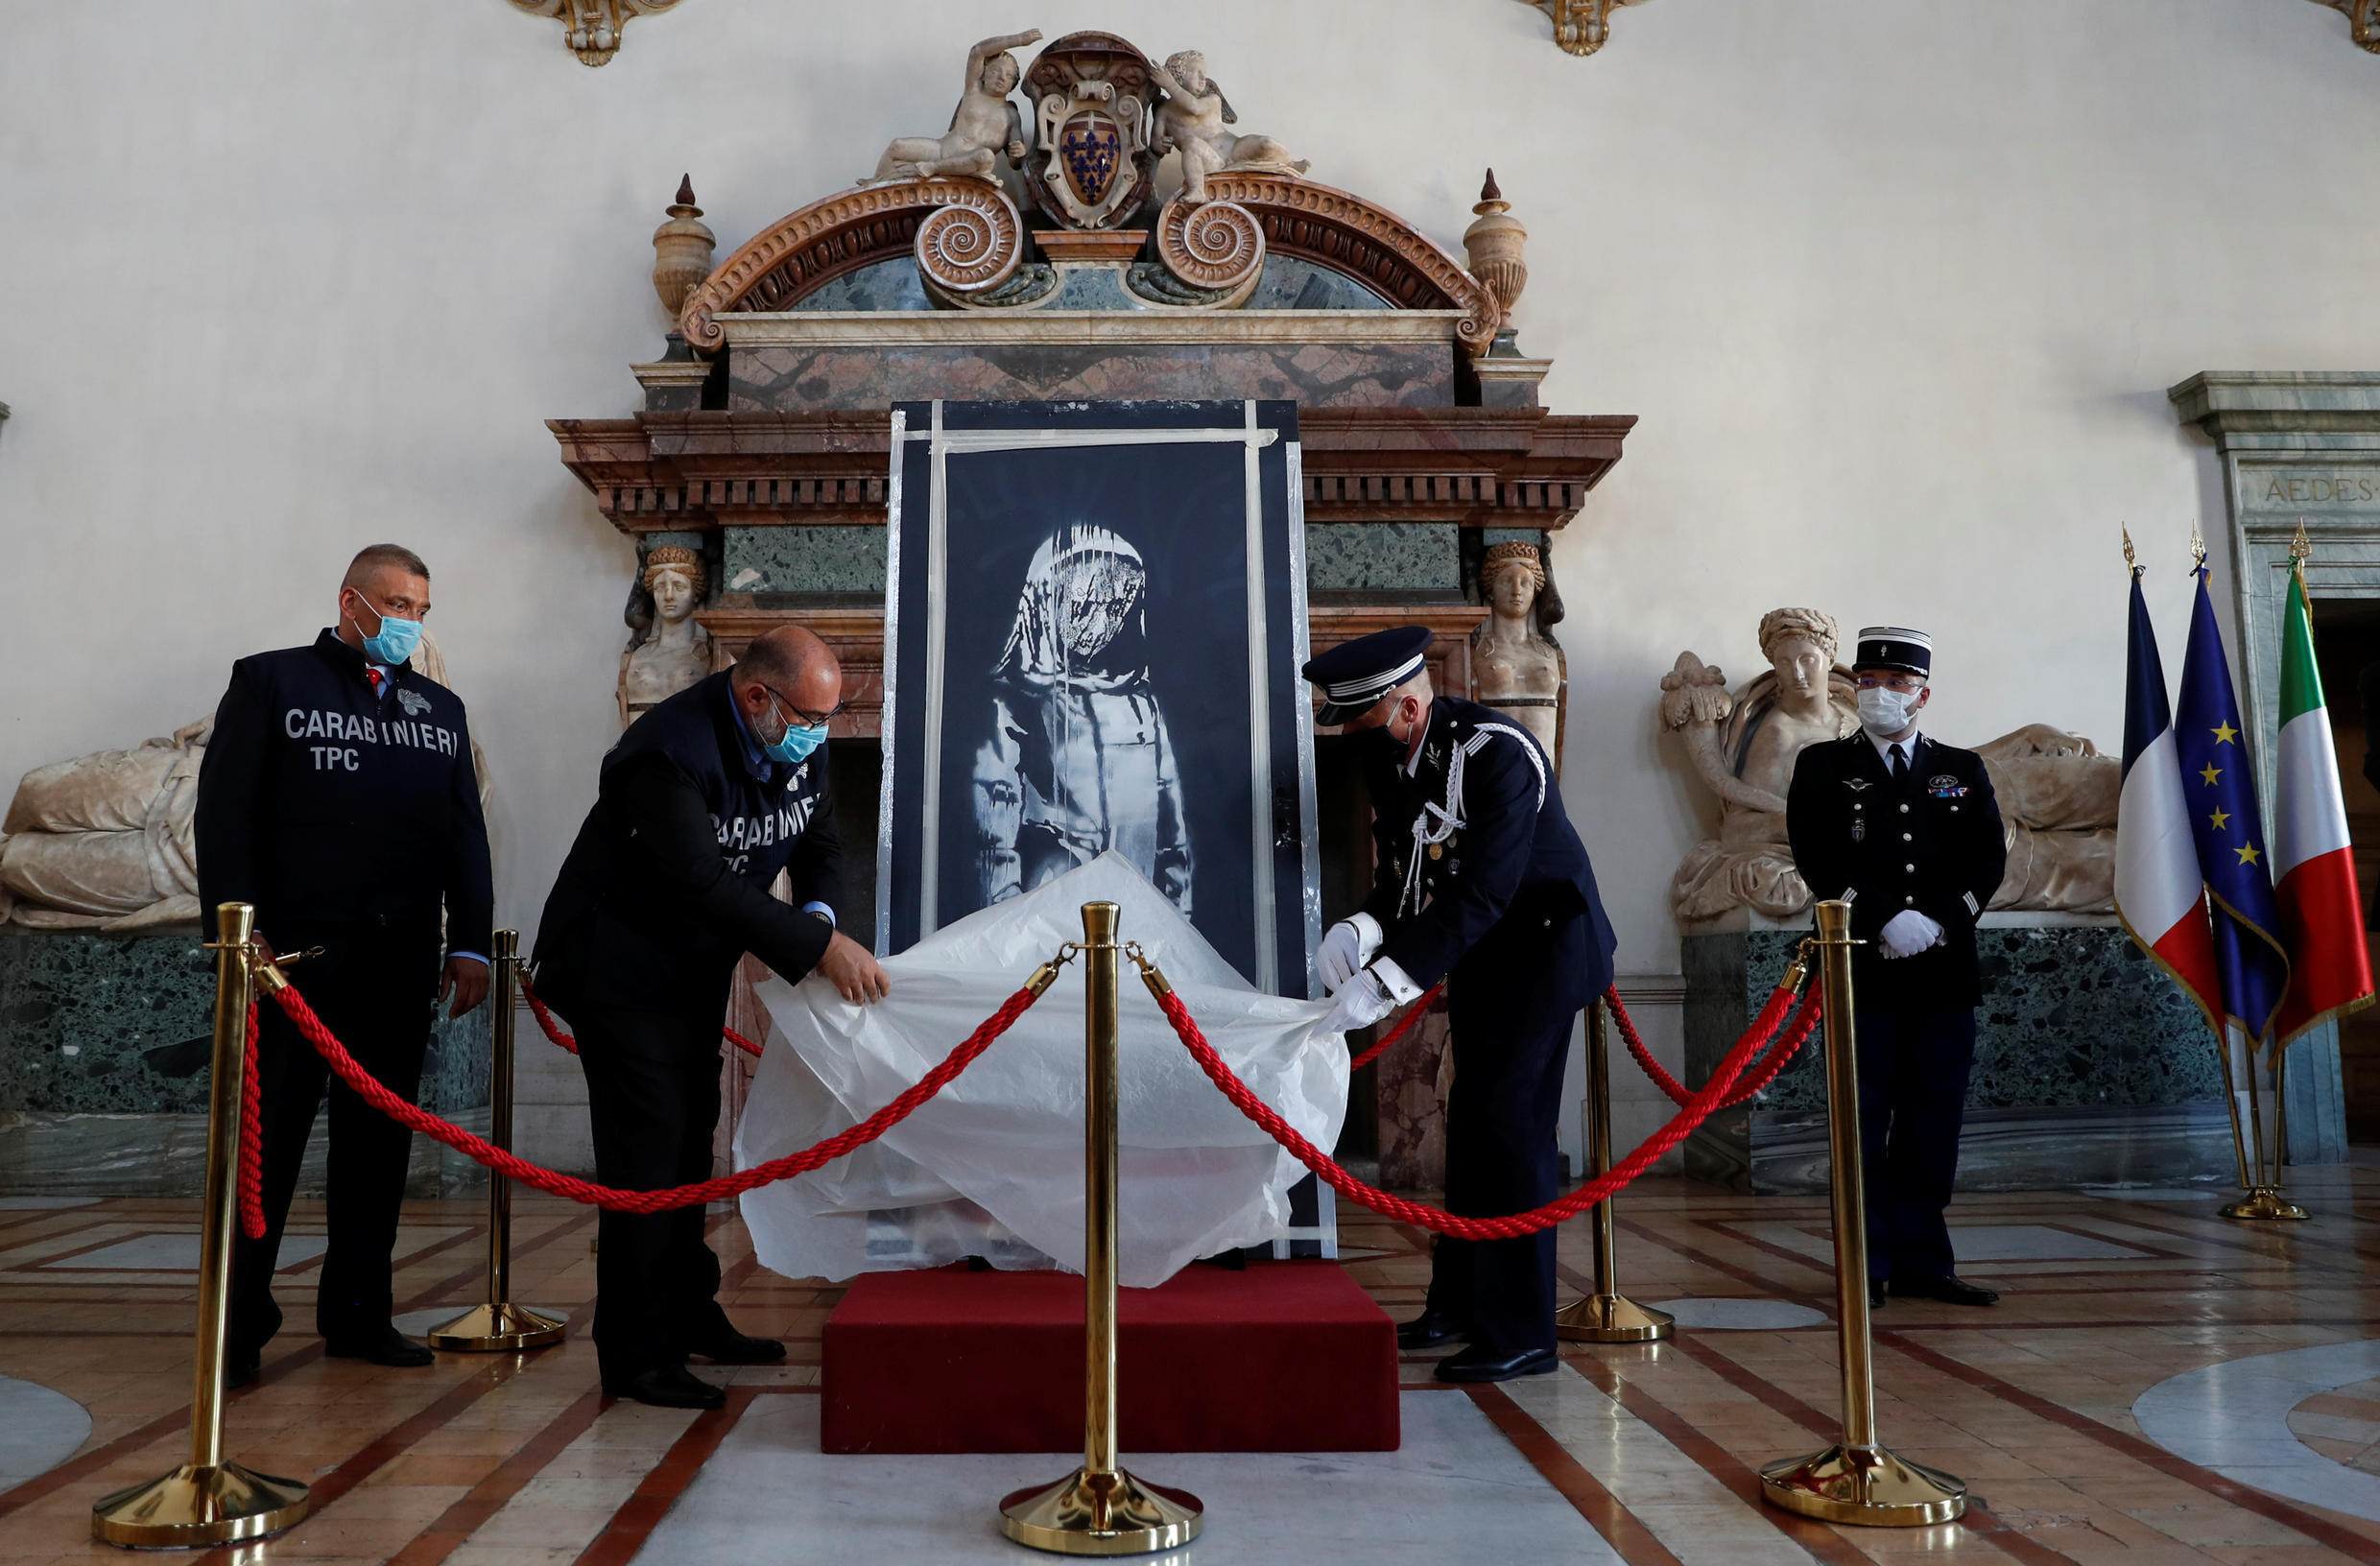 An Italian carabiniere and a French policeman unveil an artwork by British street artist Banksy during a ceremony at the French embassy in Rome, Italy, on July 14, 2020. The piece was stolen from the Bataclan concert hall in Paris and found in an Italian farmhouse.